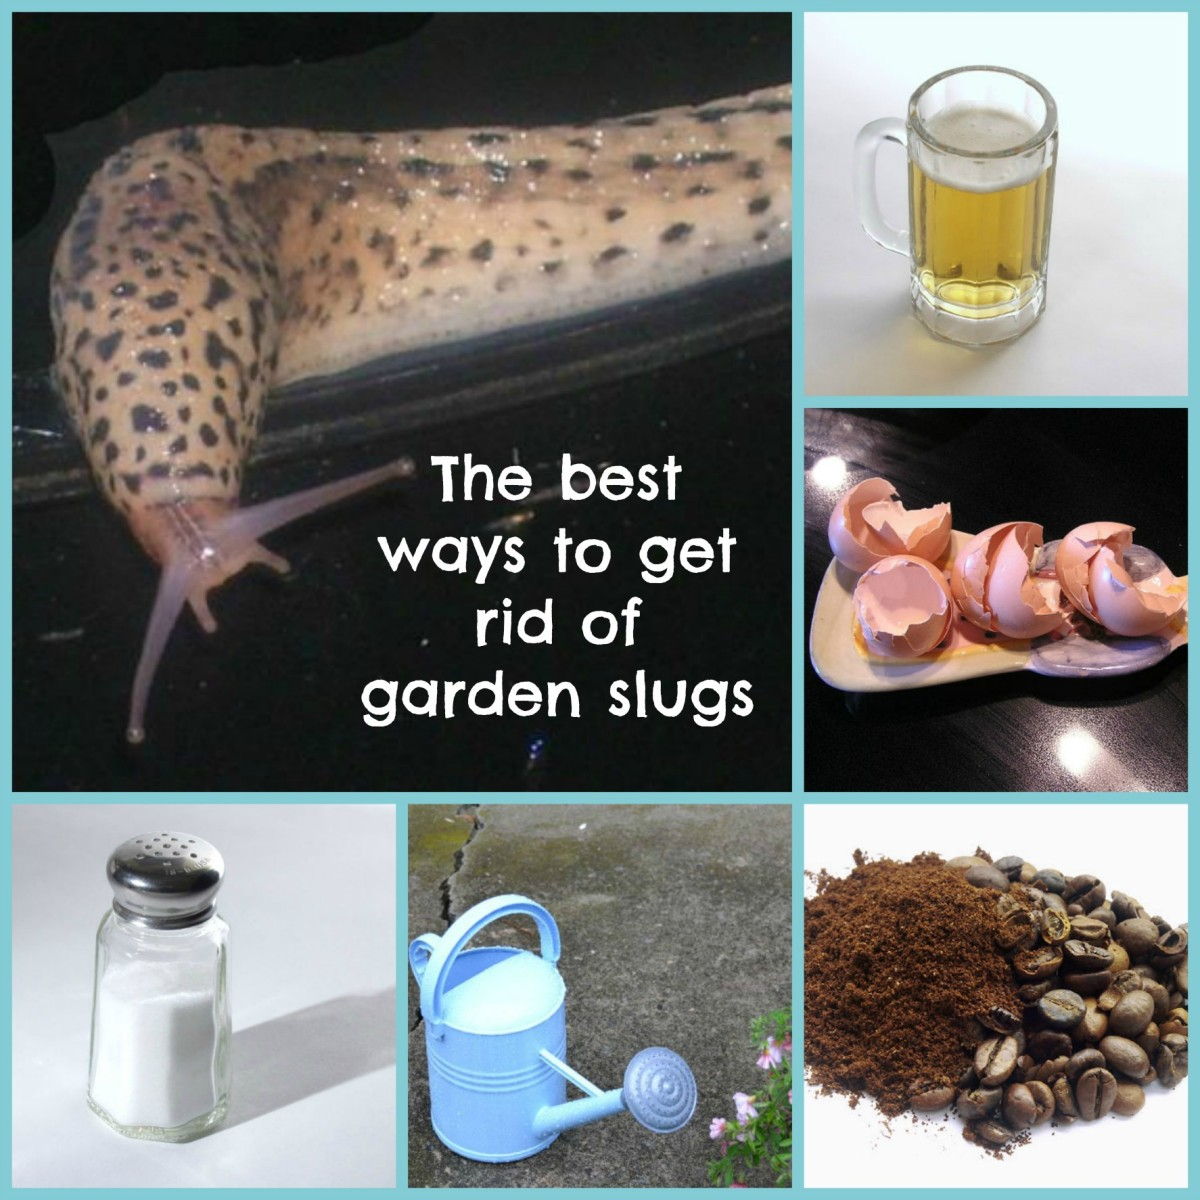 How to get rid of slugs in the garden by kathy hull - How to get rid of slugs in garden ...